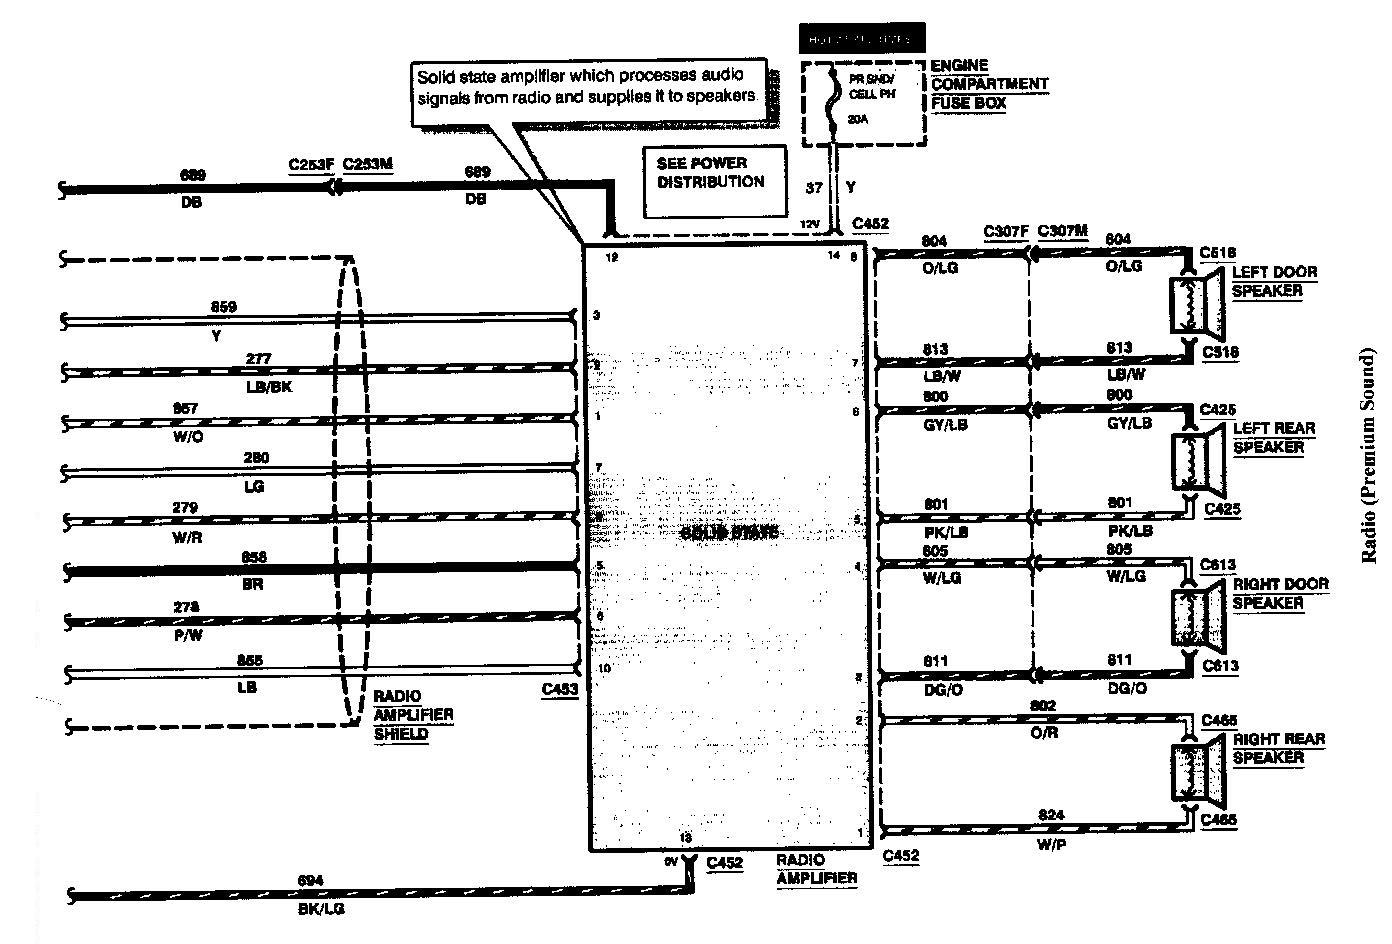 95Mark8 Premium Sound Wiring2?resize=840%2C570 diagrams lincoln wiring diagrams online the lincoln mark vii 1996 lincoln town car wiring diagram at edmiracle.co